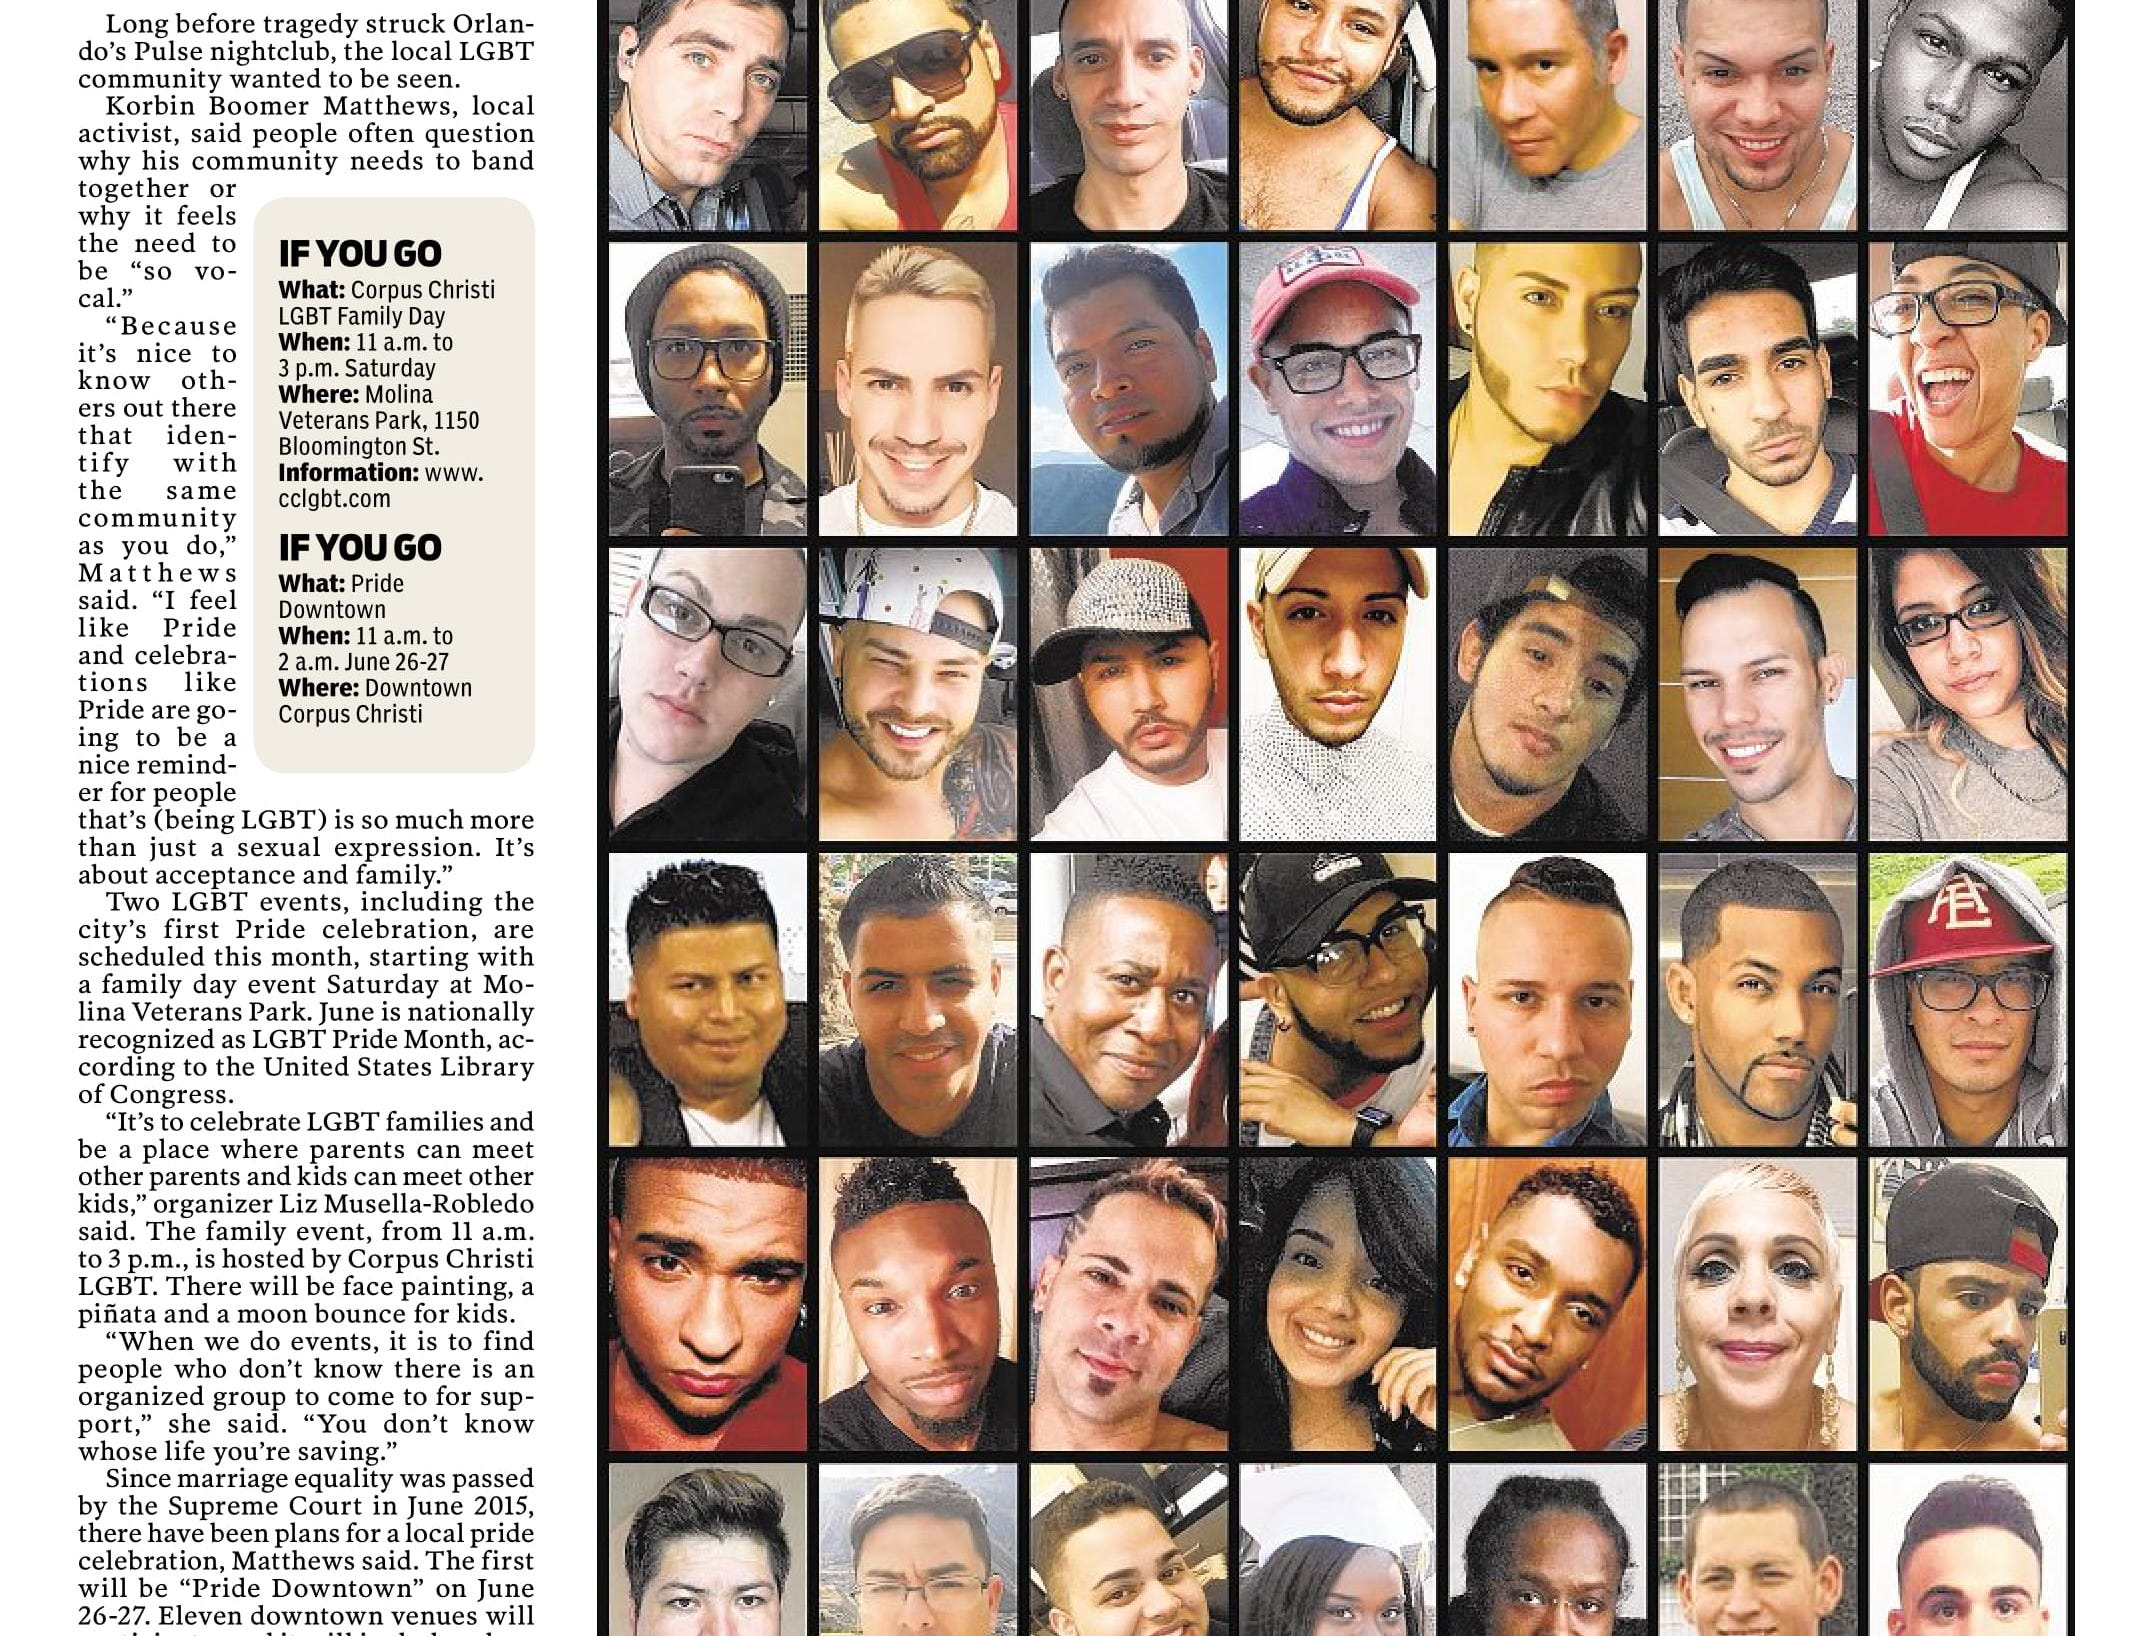 A page from the Caller-Times on June 18, 2016 featuring coverage of the Pulse nightclub shooting.